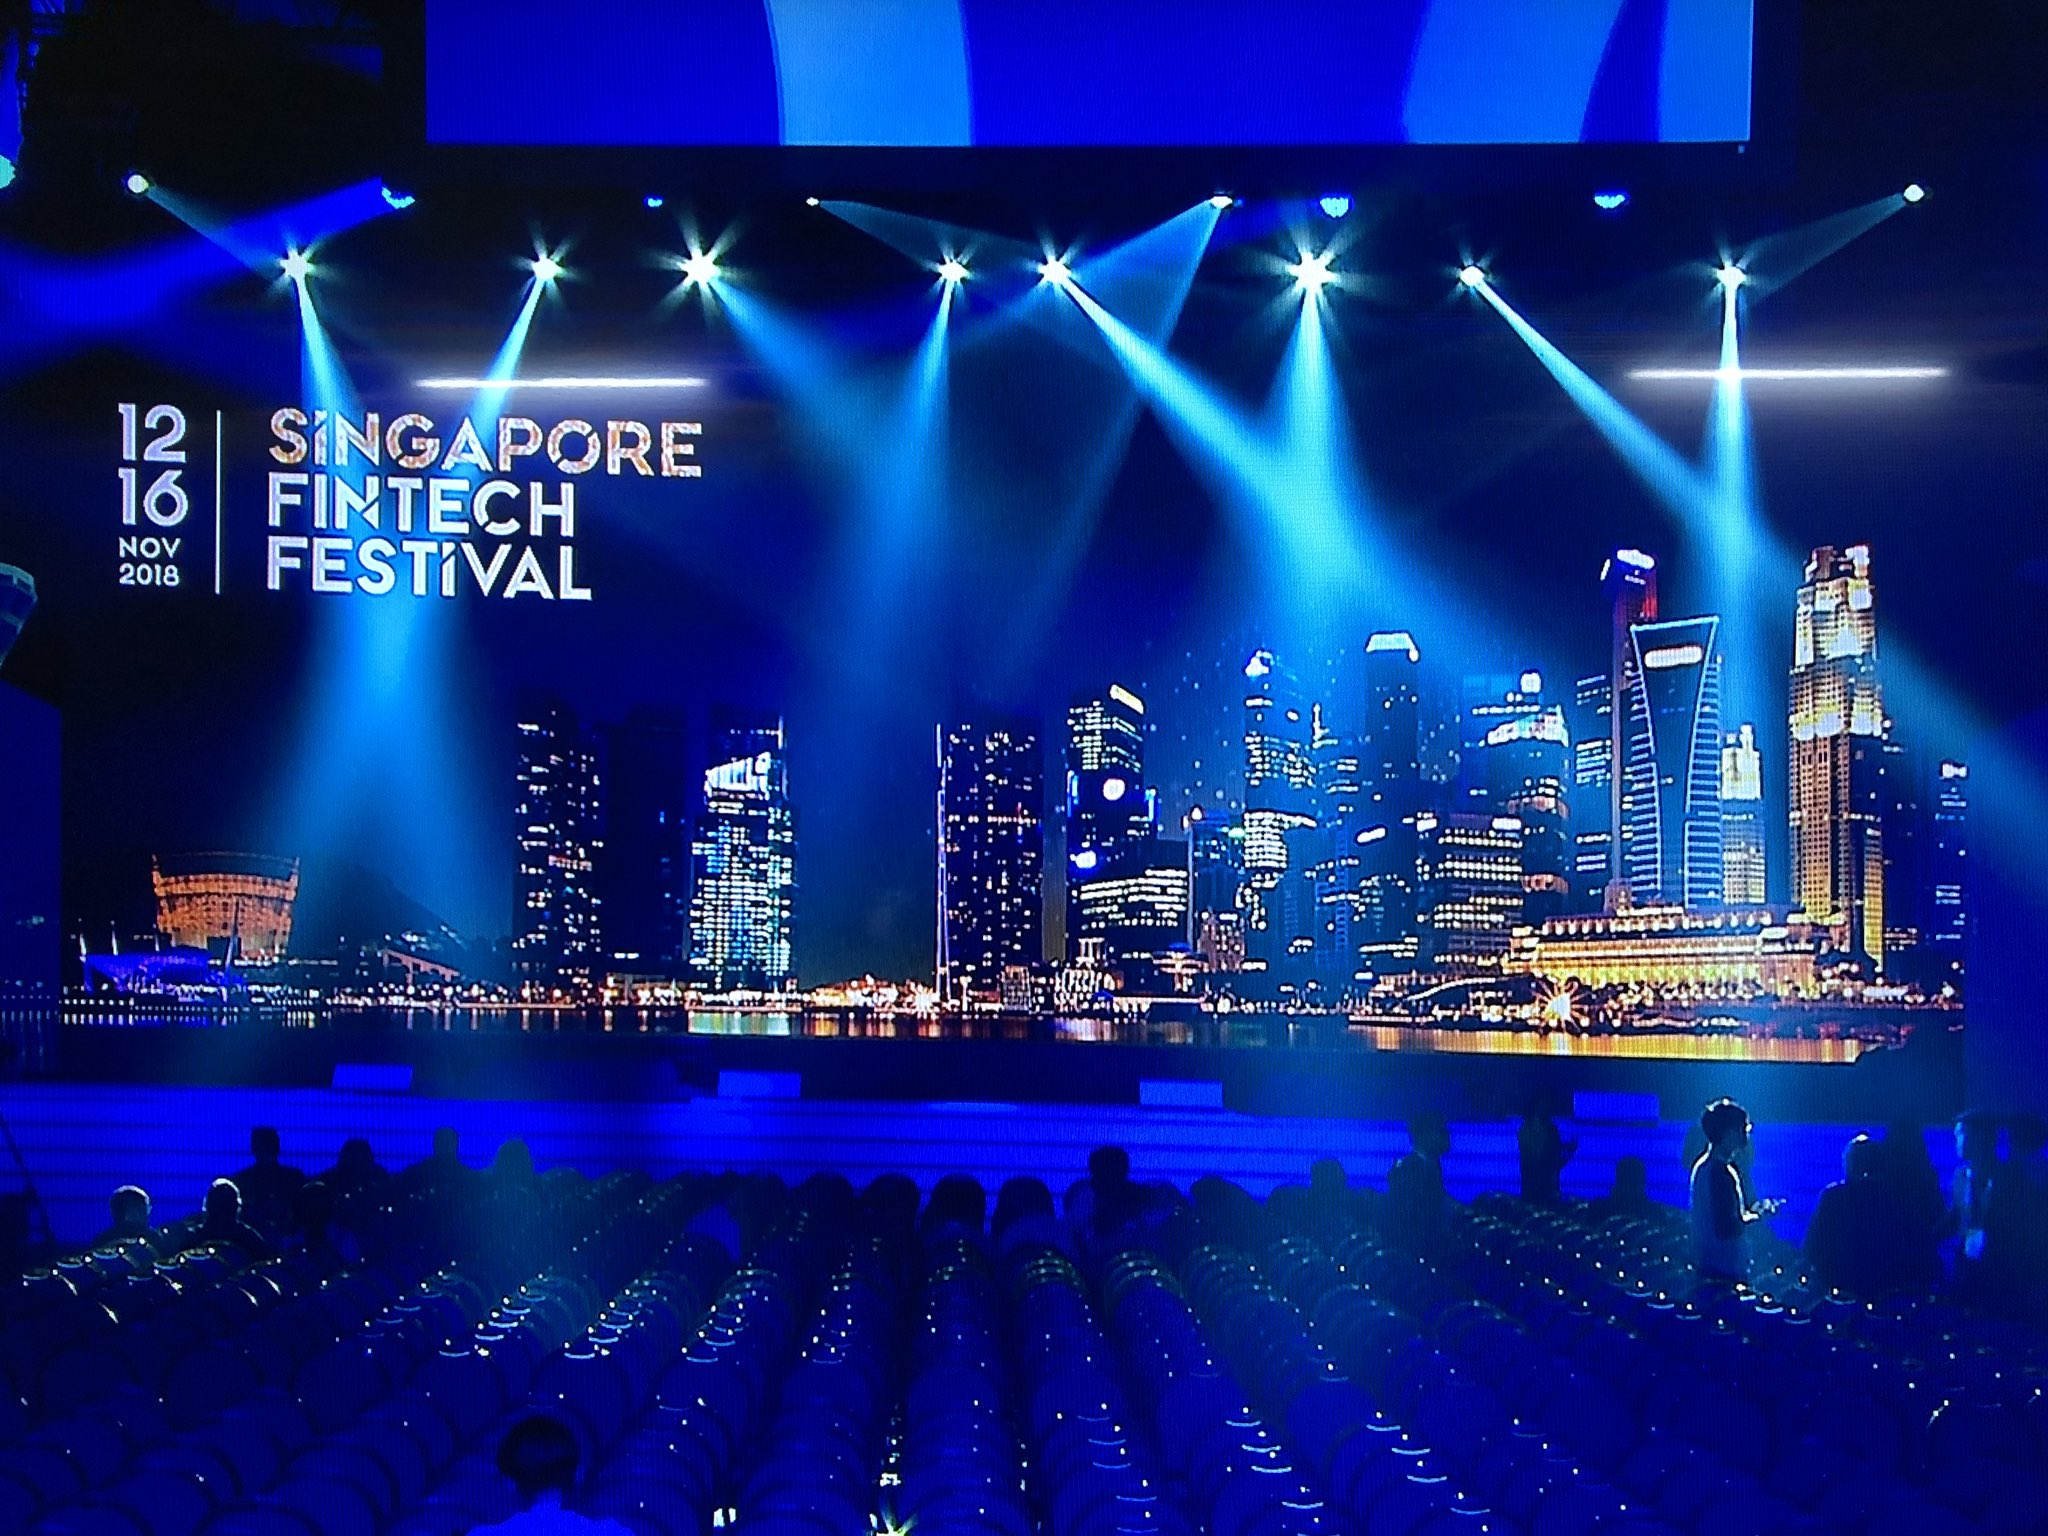 About 40,000 people from over 100 countries are expected to participate in the ongoing Singapore Fintech Festival which started today. Photo courtesy: Twitter@/sgfintechfest